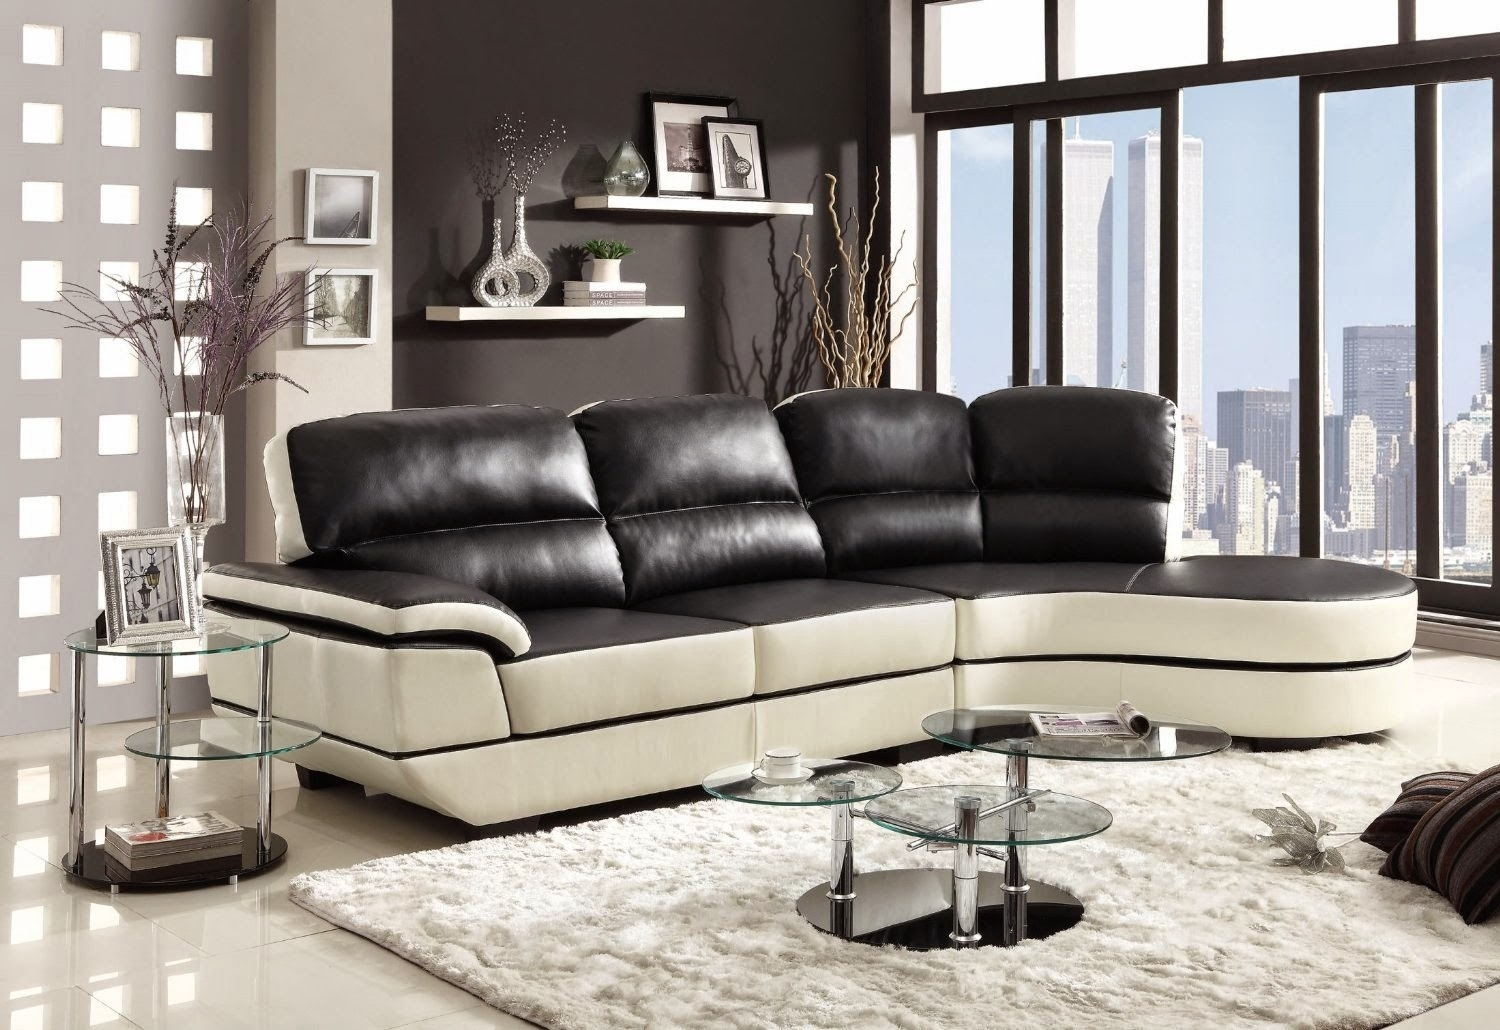 Furniture : Sectional Sofa Ebay Corner Couch 6 Seater 4 Recliner in 100X80 Sectional Sofas (Image 6 of 10)